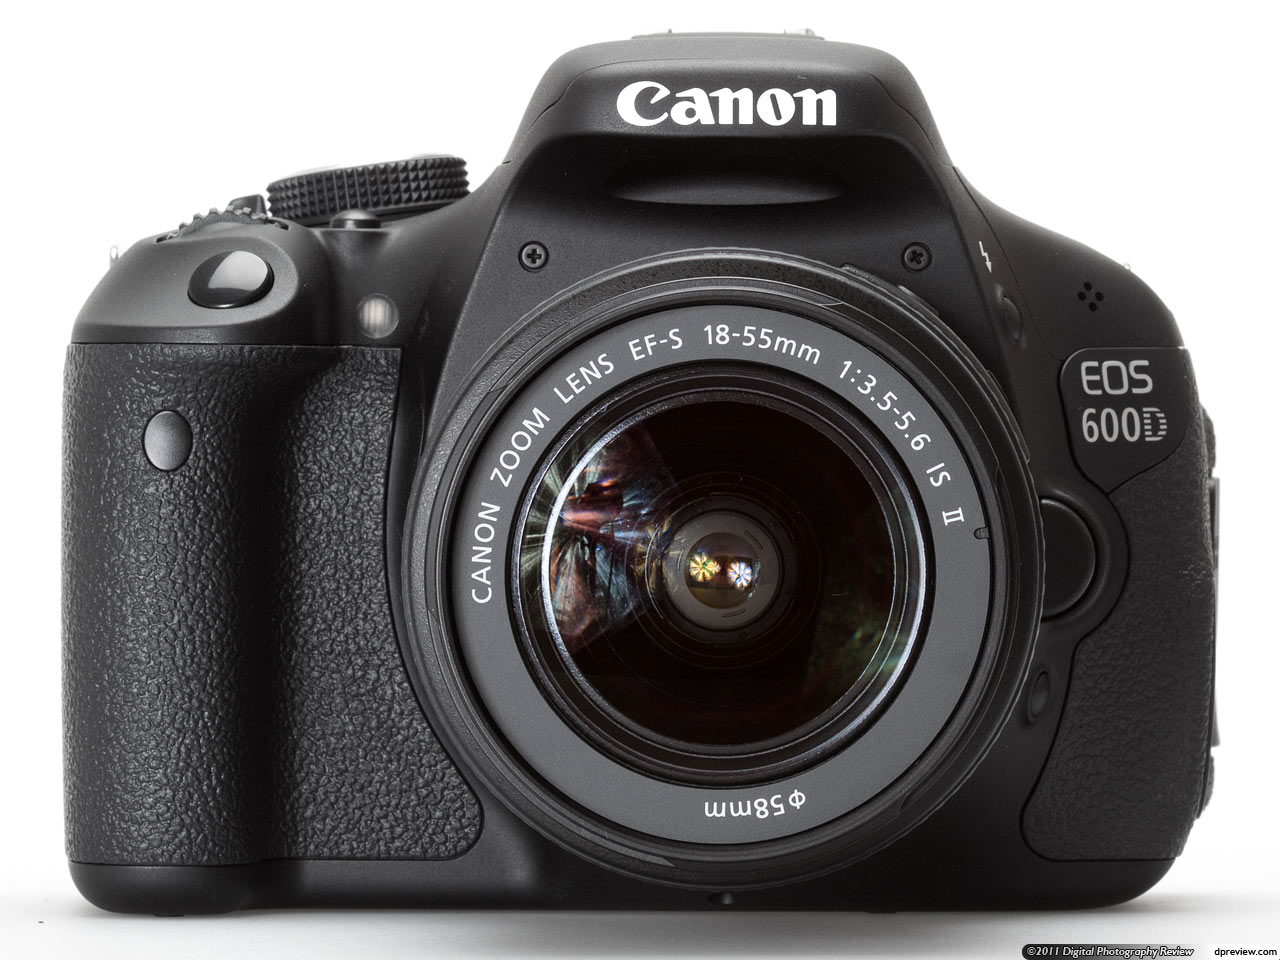 Canon Rebel T3i / EOS 600D Review